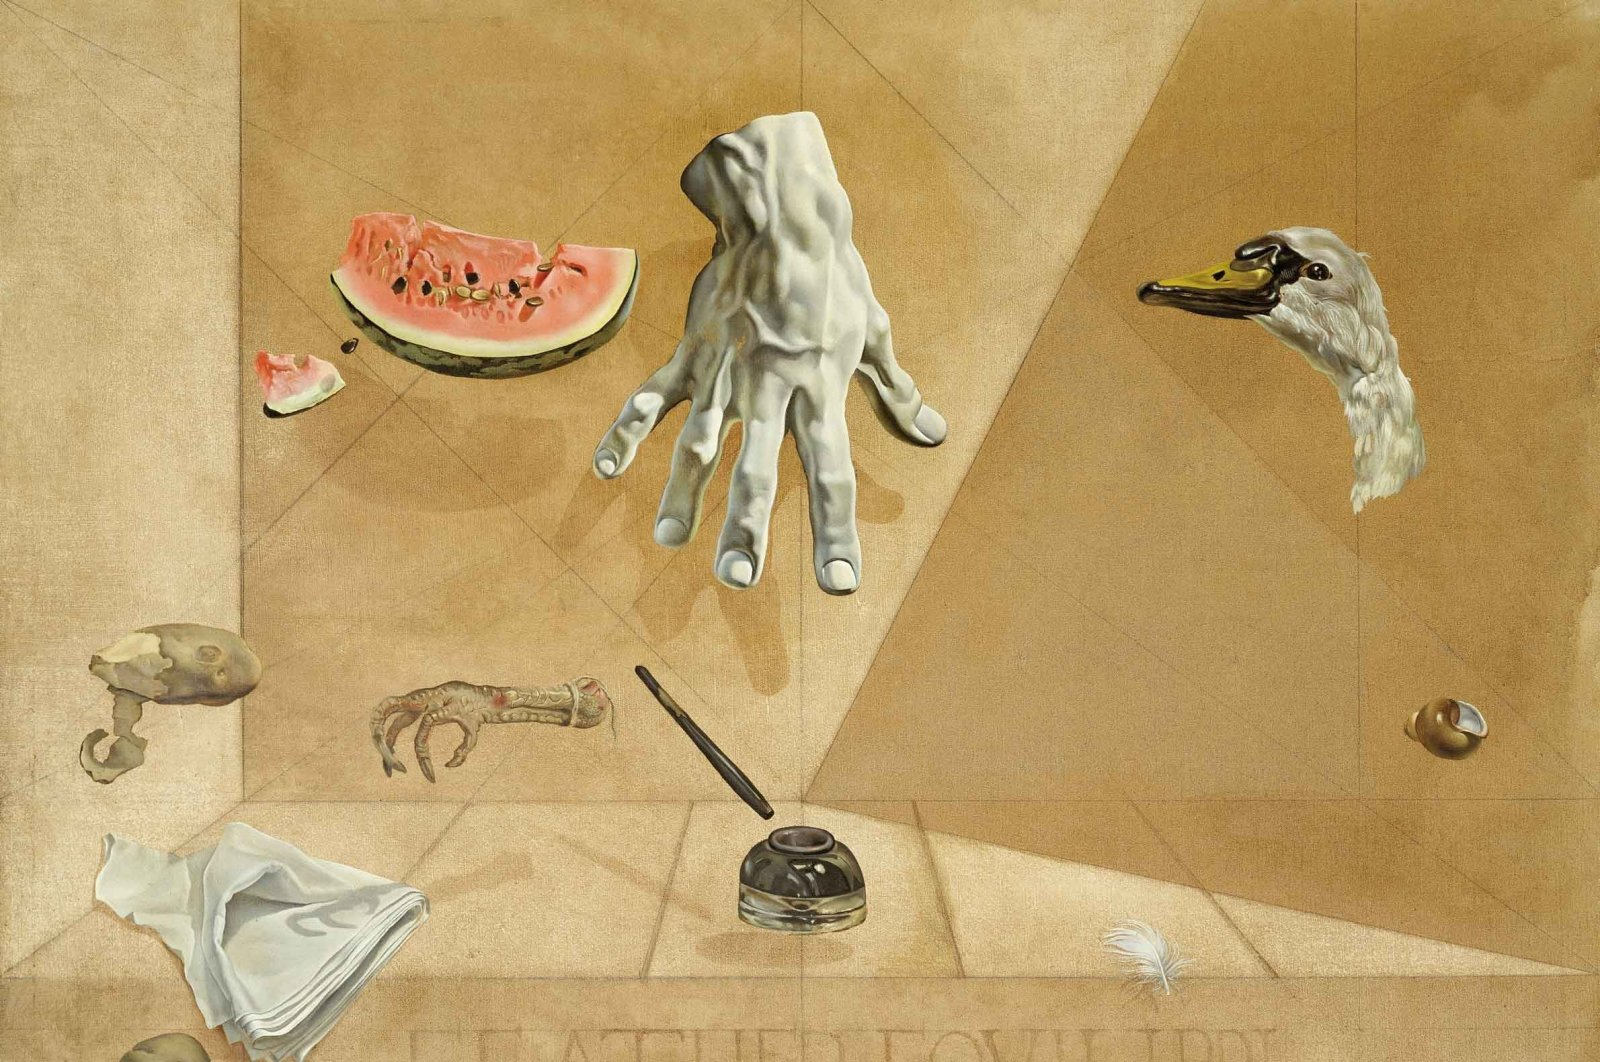 """""""Intra-atomic equilibrium of a swan's feather,"""" 1947, oil on canvas, 77.8-by-96.8 centimeters, Gala-Salvador Dali Foundation. (Photo courtesy of Sakıp Sabancı Museum)"""